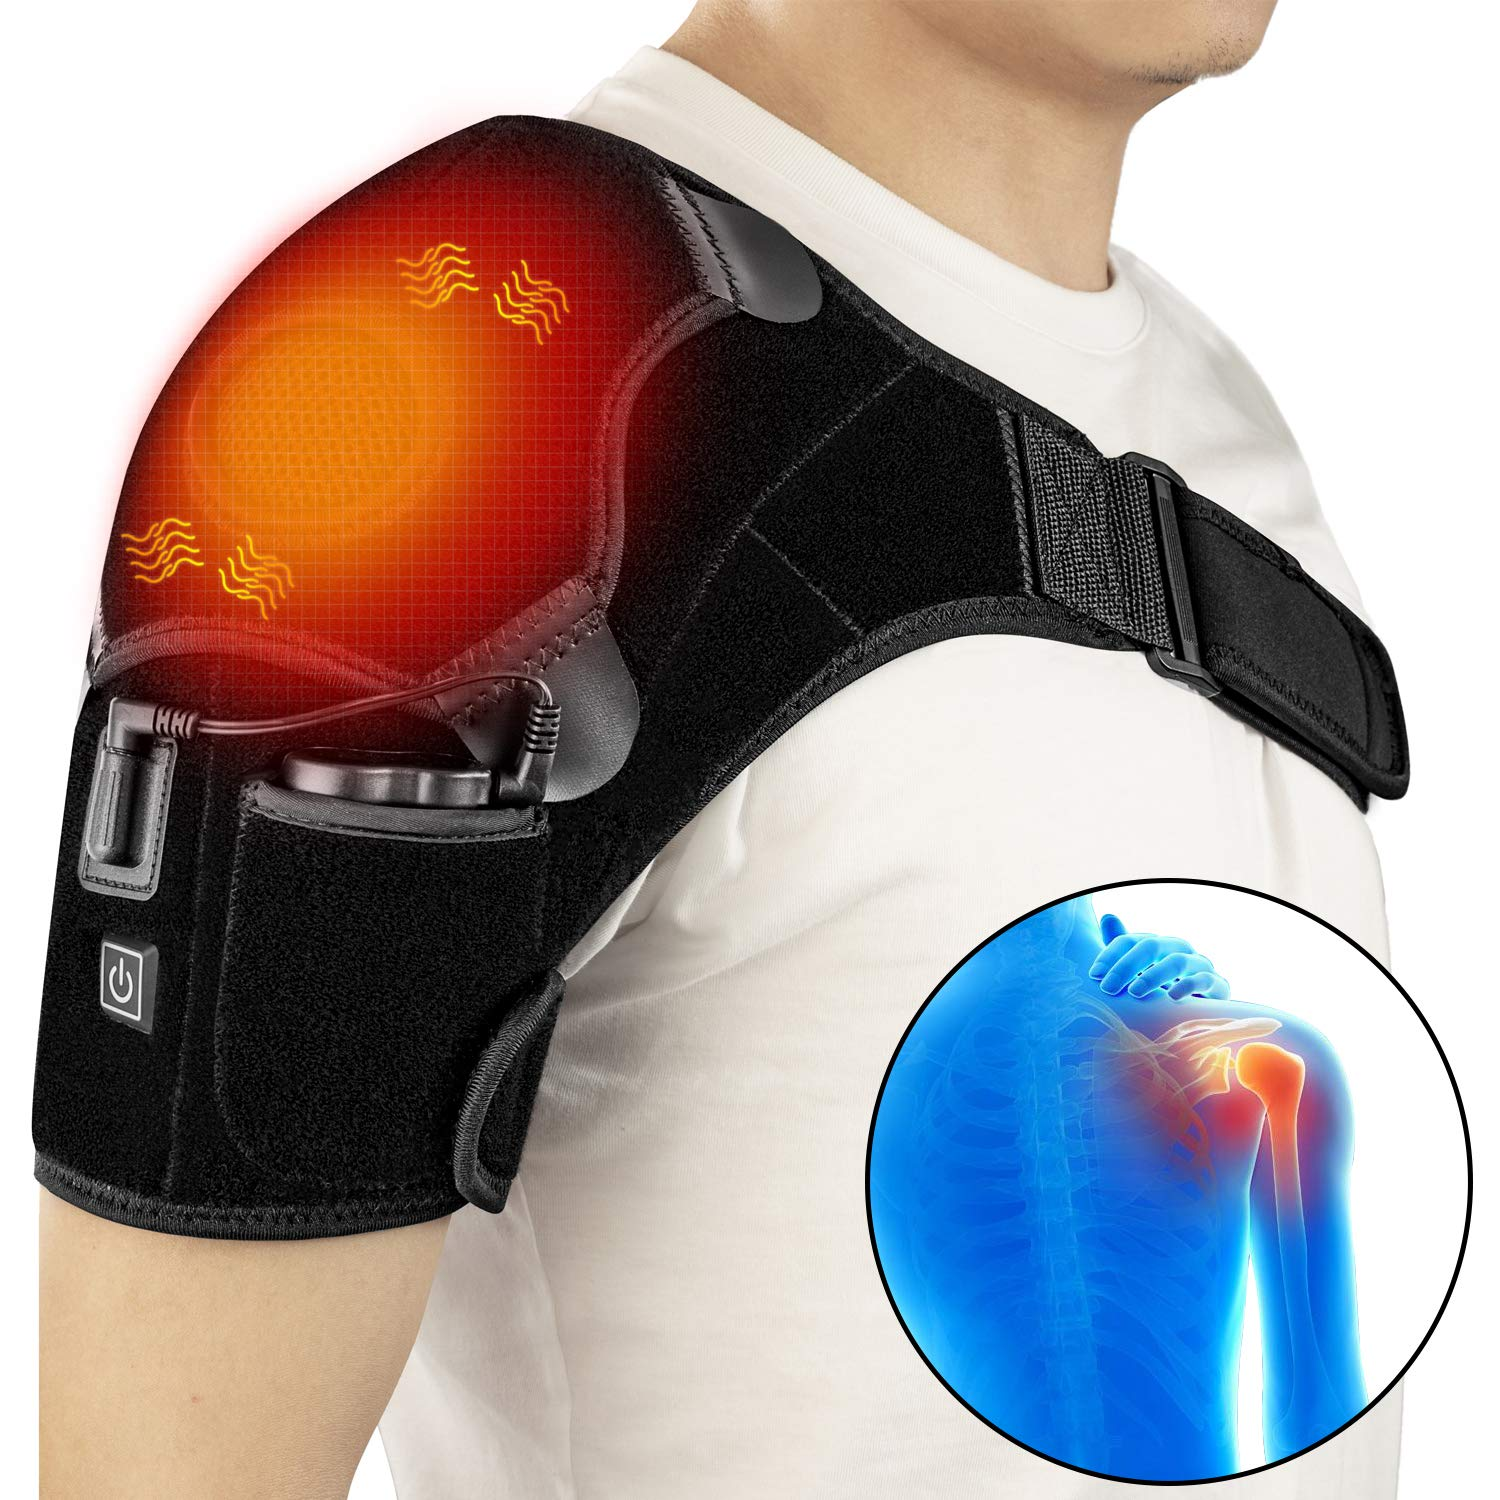 Heated Shoulder Support Brace Wrap Portable Electric 3 Heating Temperature Setting Cableless Infrared Pad with Hot&Cold Therapy for Rotator Cuff, Dislocated, Frozen Shoulder Pain Relief Patches by ZLTFashion